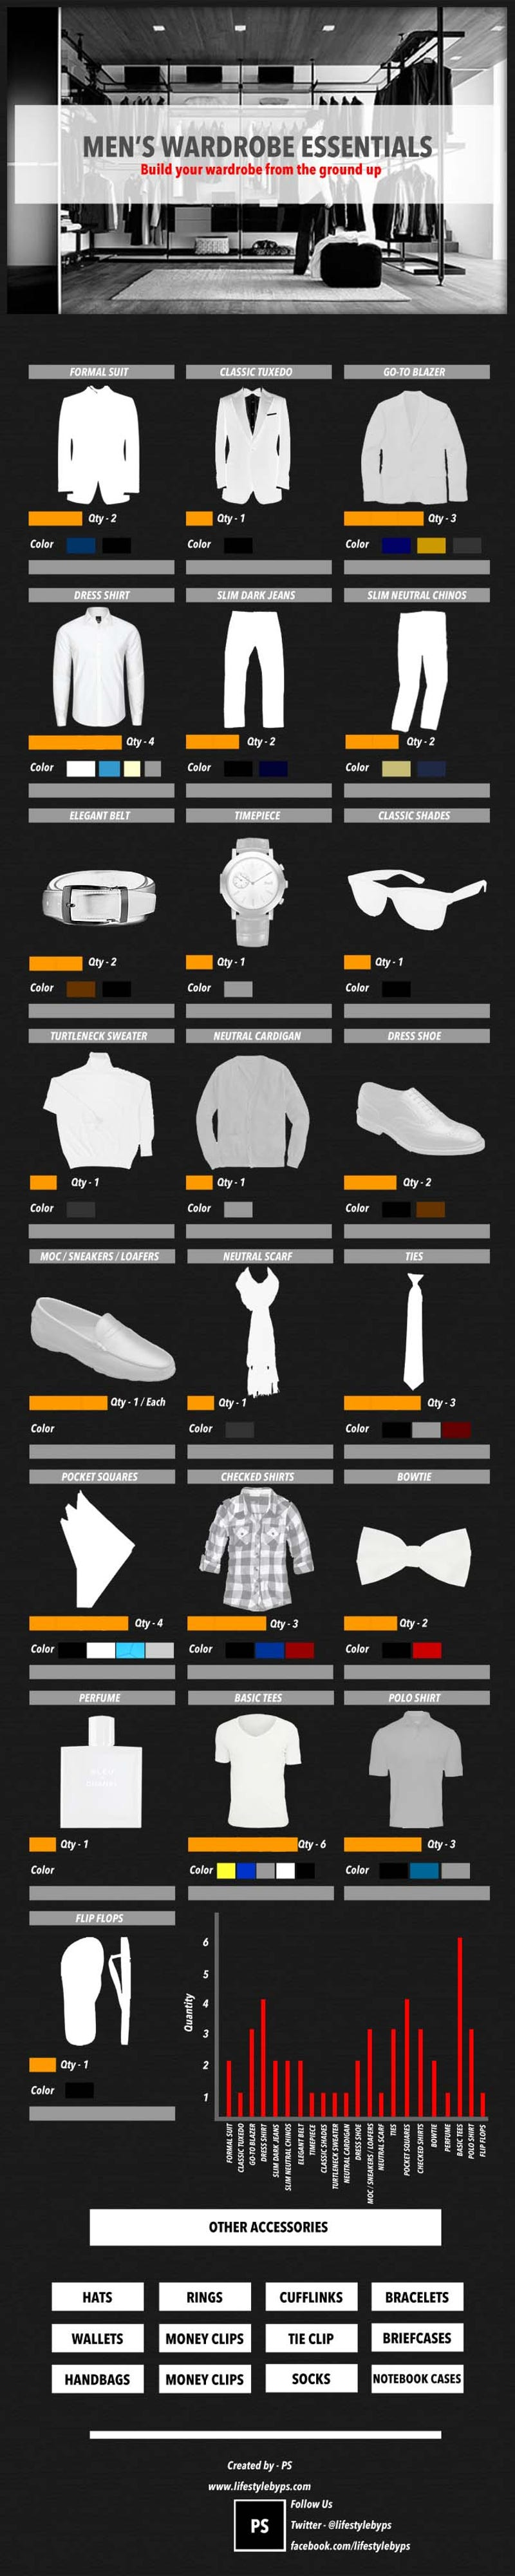 Create a Minimalist Wardrobe with These Essential Clothing Items